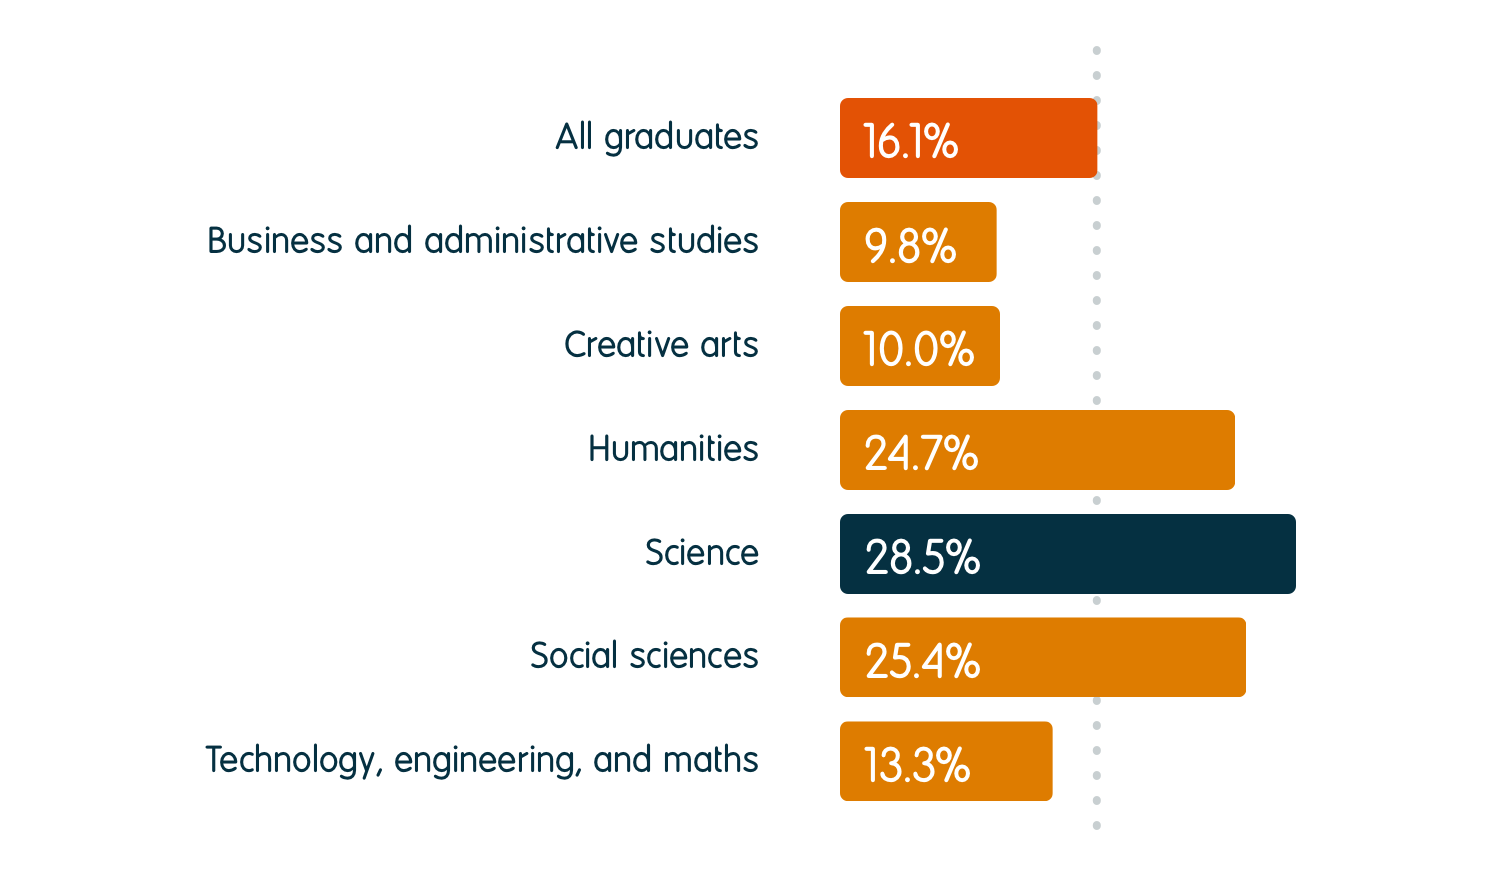 28.5% of science graduates were in further study six months after graduation, compared to an average of 16.1% for all graduates. For other subject groups, the percentage going into further study was 9.8% for business and administrative studies, 10.0% for creative arts, 24.7% for humanities, 25.4% for social sciences, and 13.3% for technology, engineering, and maths.